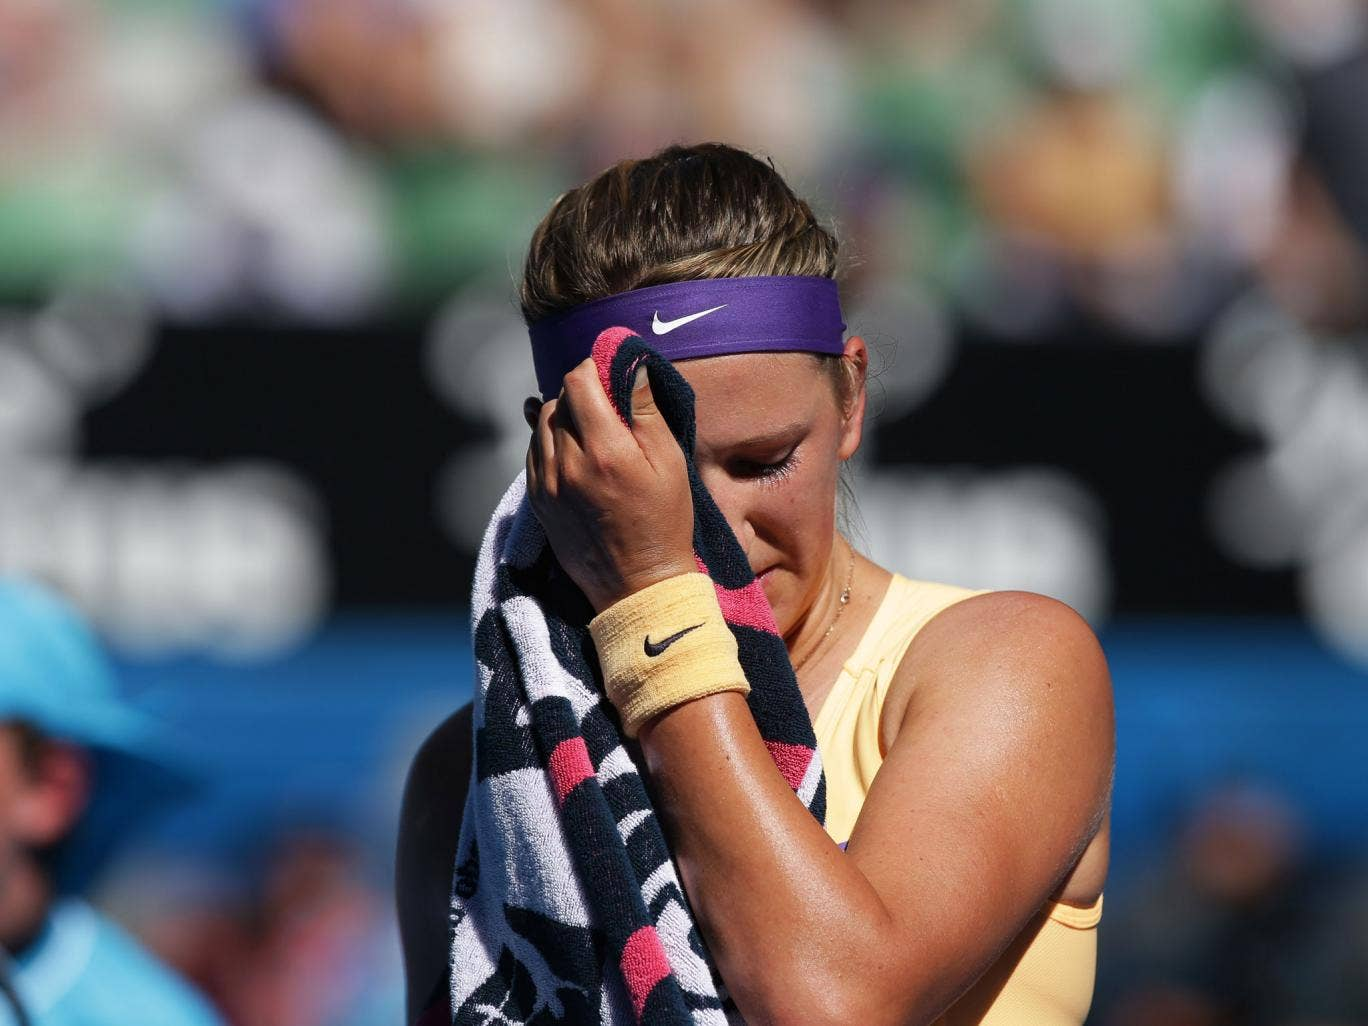 Victoria Azarenka, the defending champion, was facing accusations of gamesmanship here today